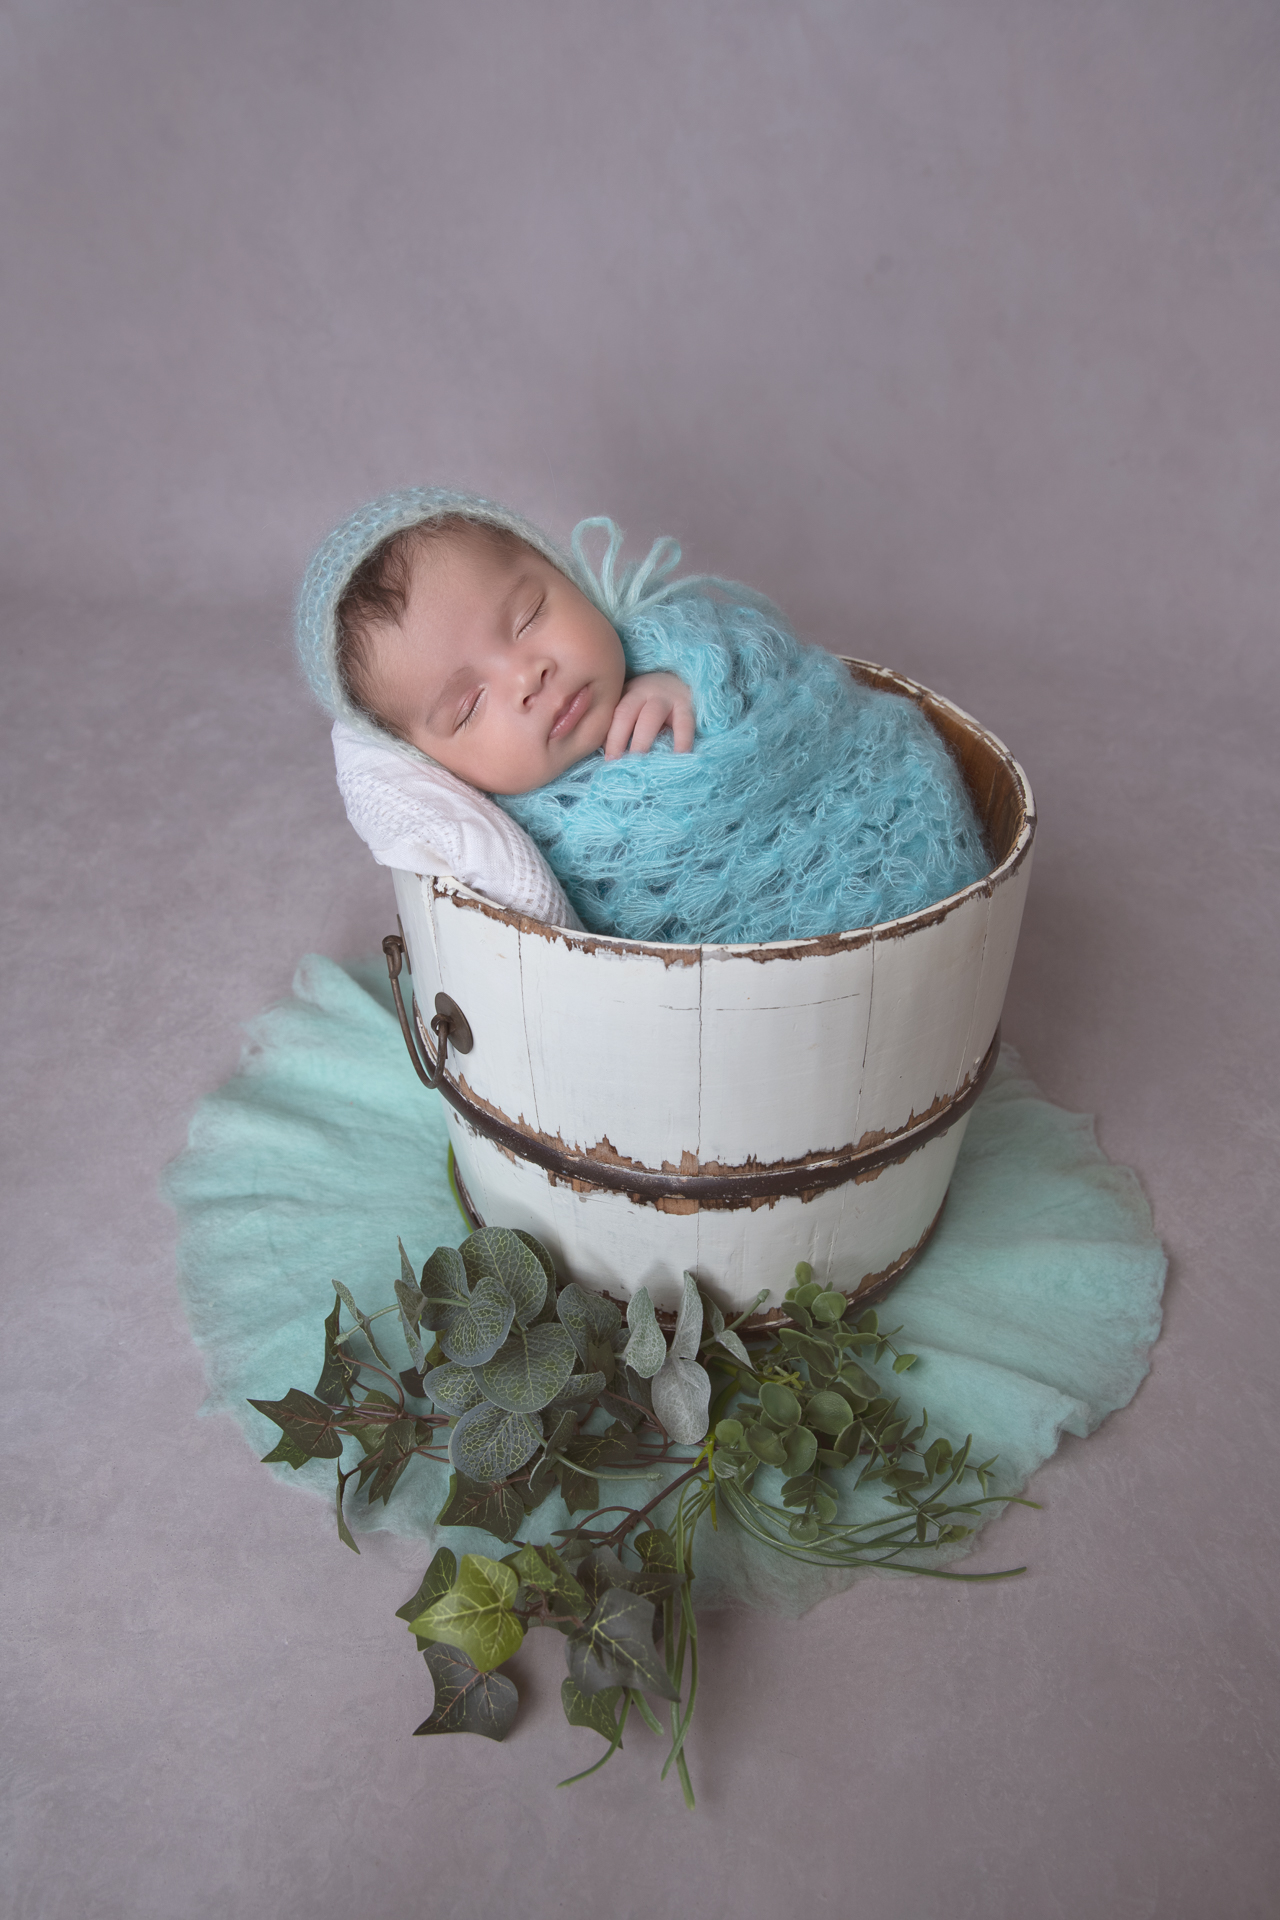 Newborn wearing turquoise hat and wrap rest on round prop basket. Gray backdrop, green leaves and green carpet decorating the scene.